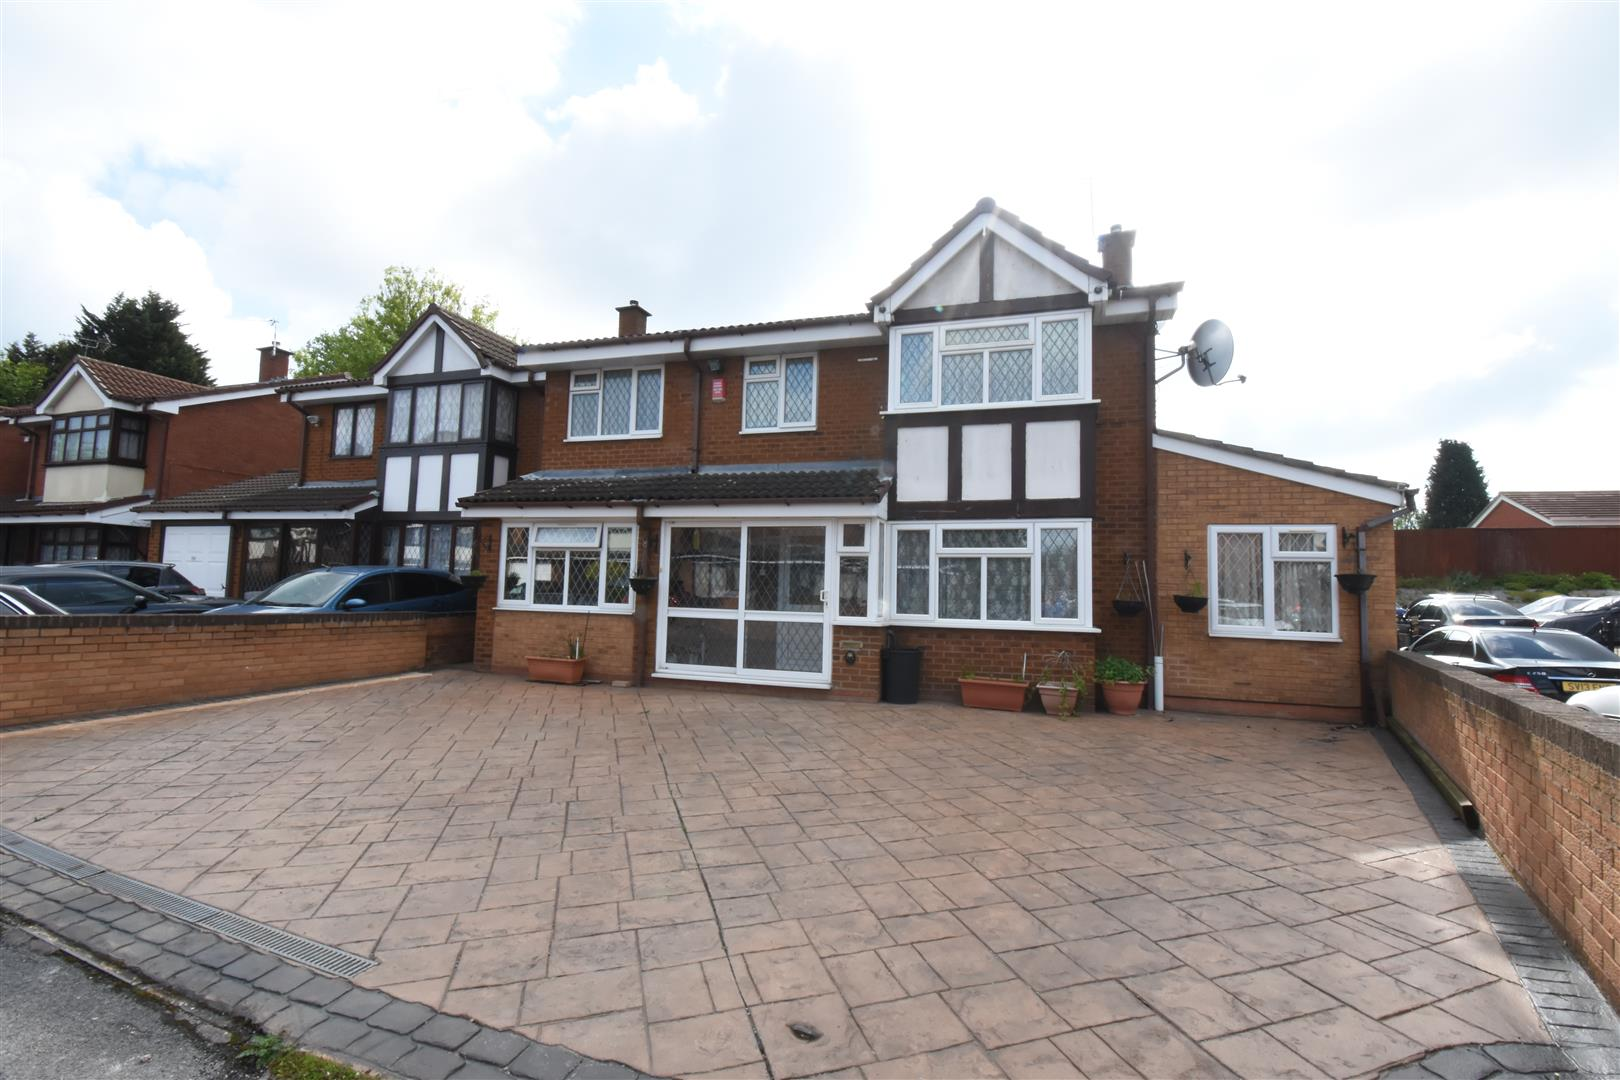 5 bed house for sale in Johnson Close, Hodge Hill, Birmingham - Property Image 1